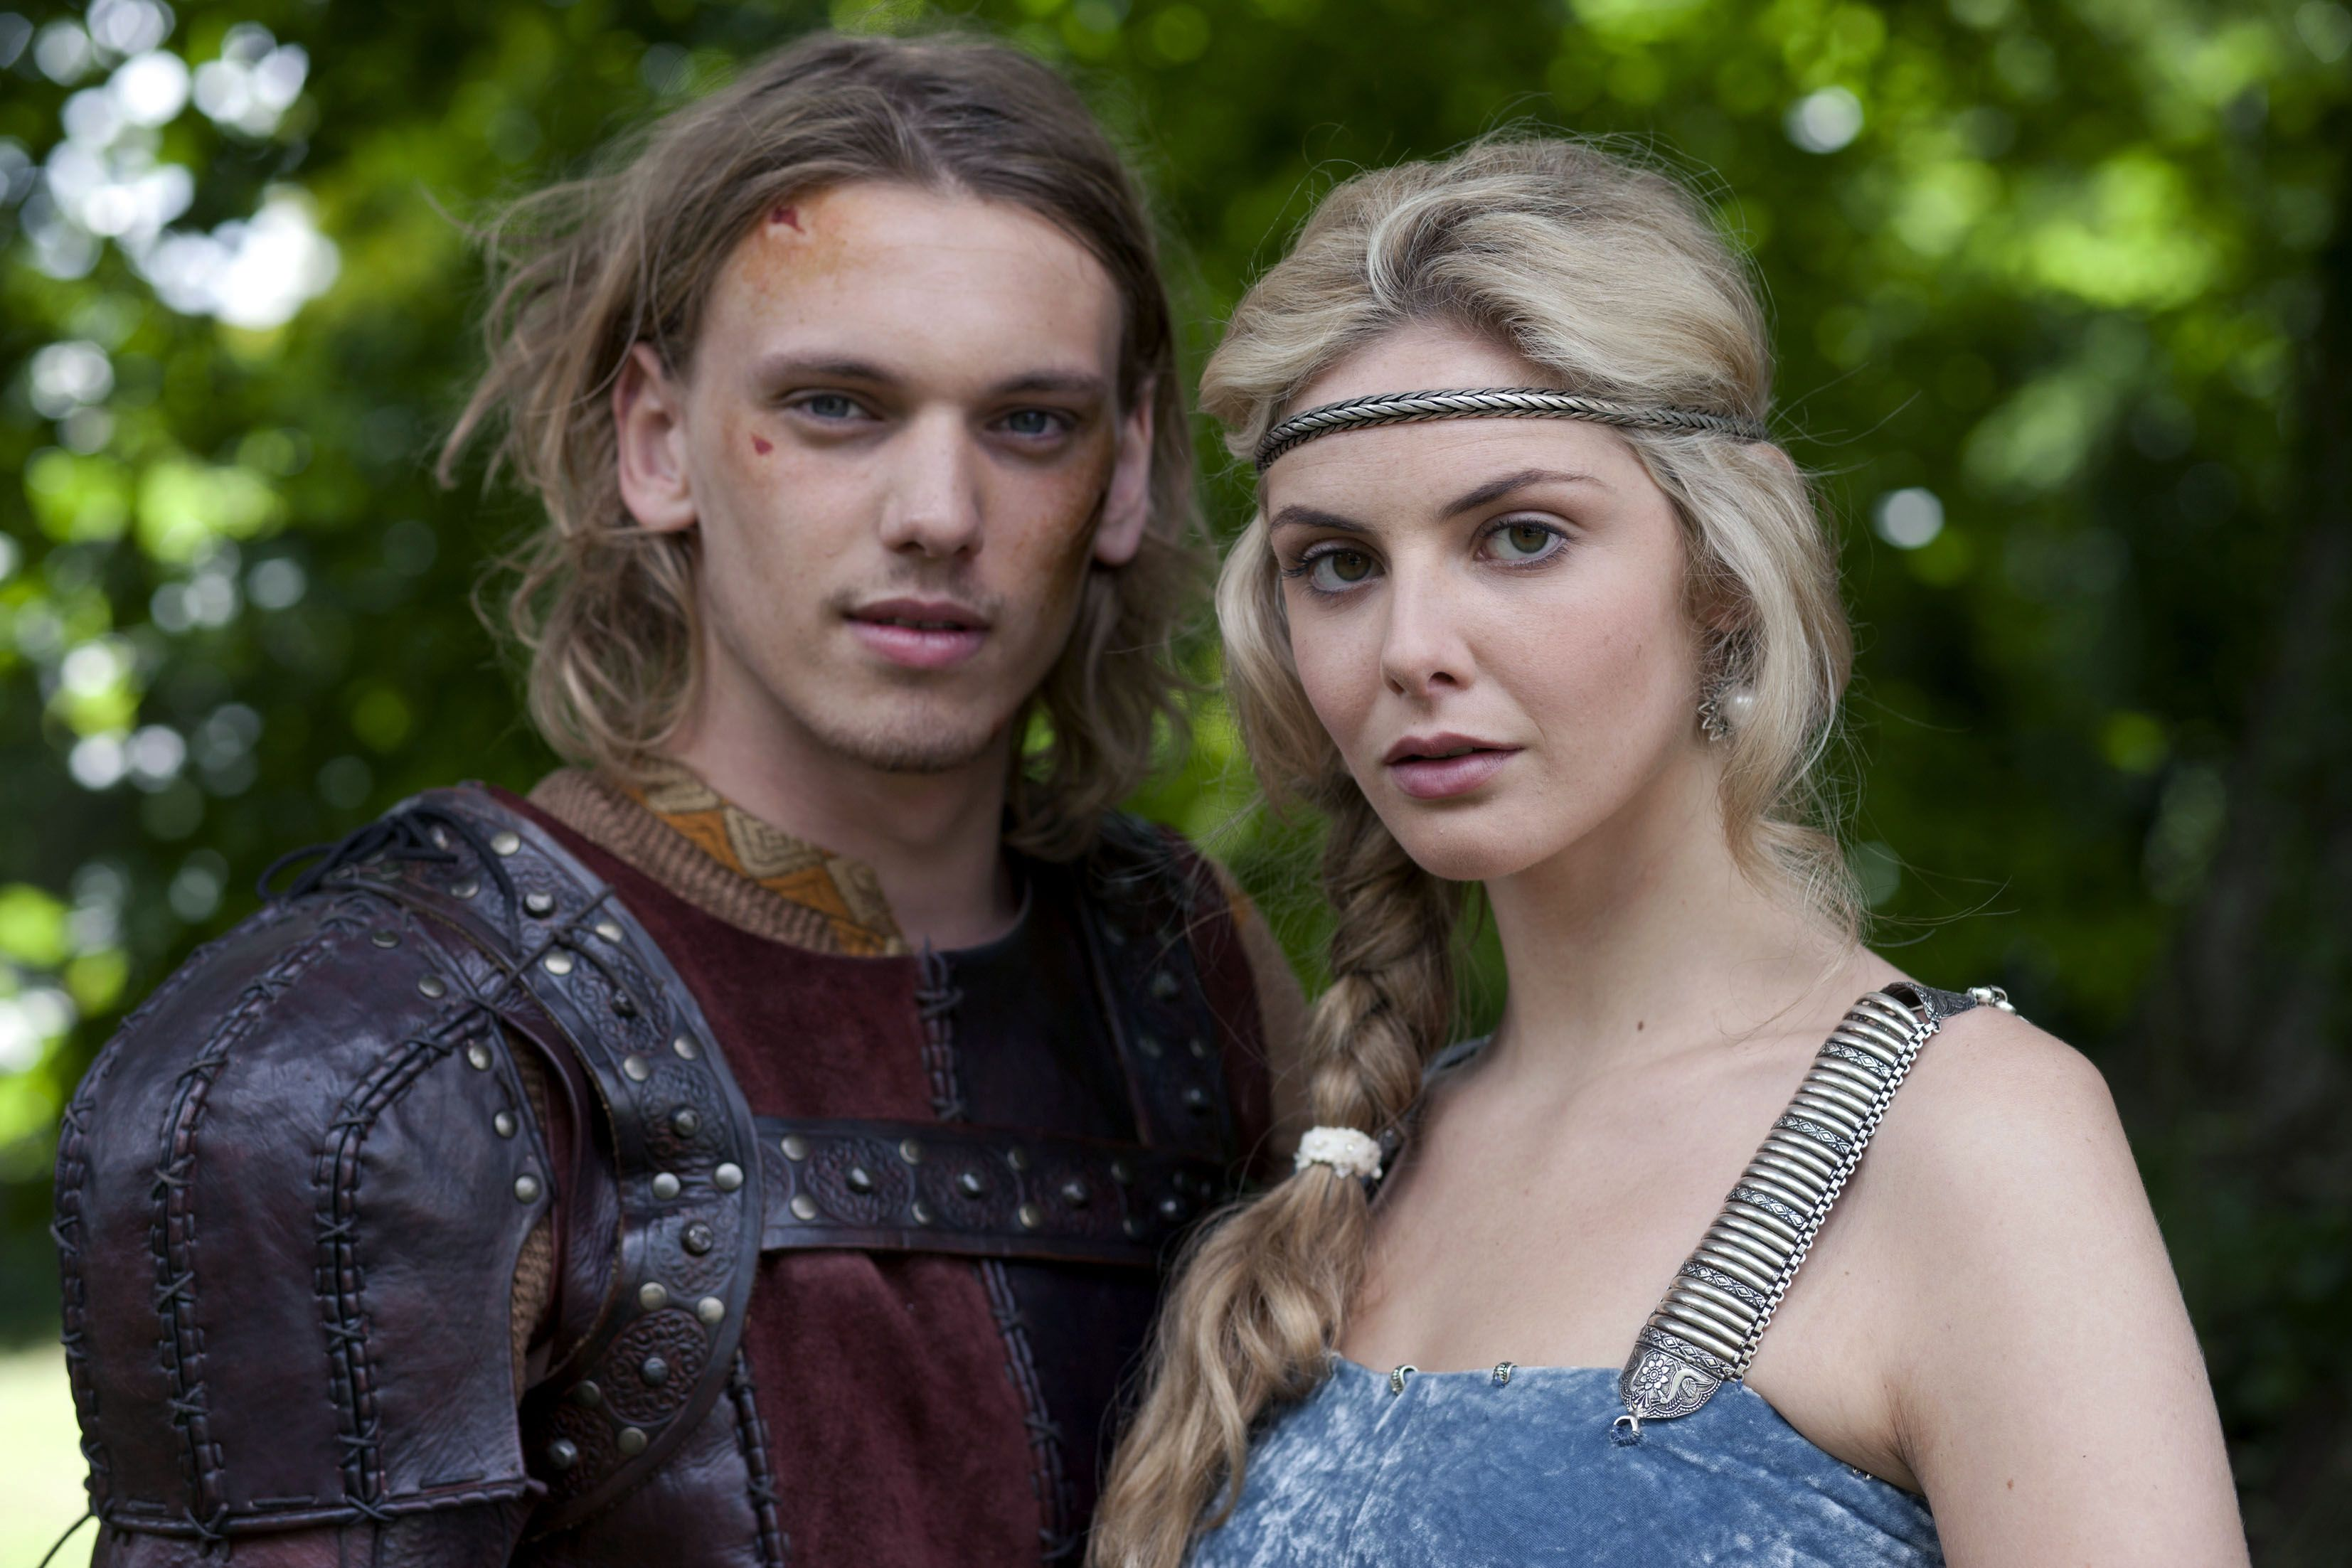 Camelot - Guinevere and Arthur